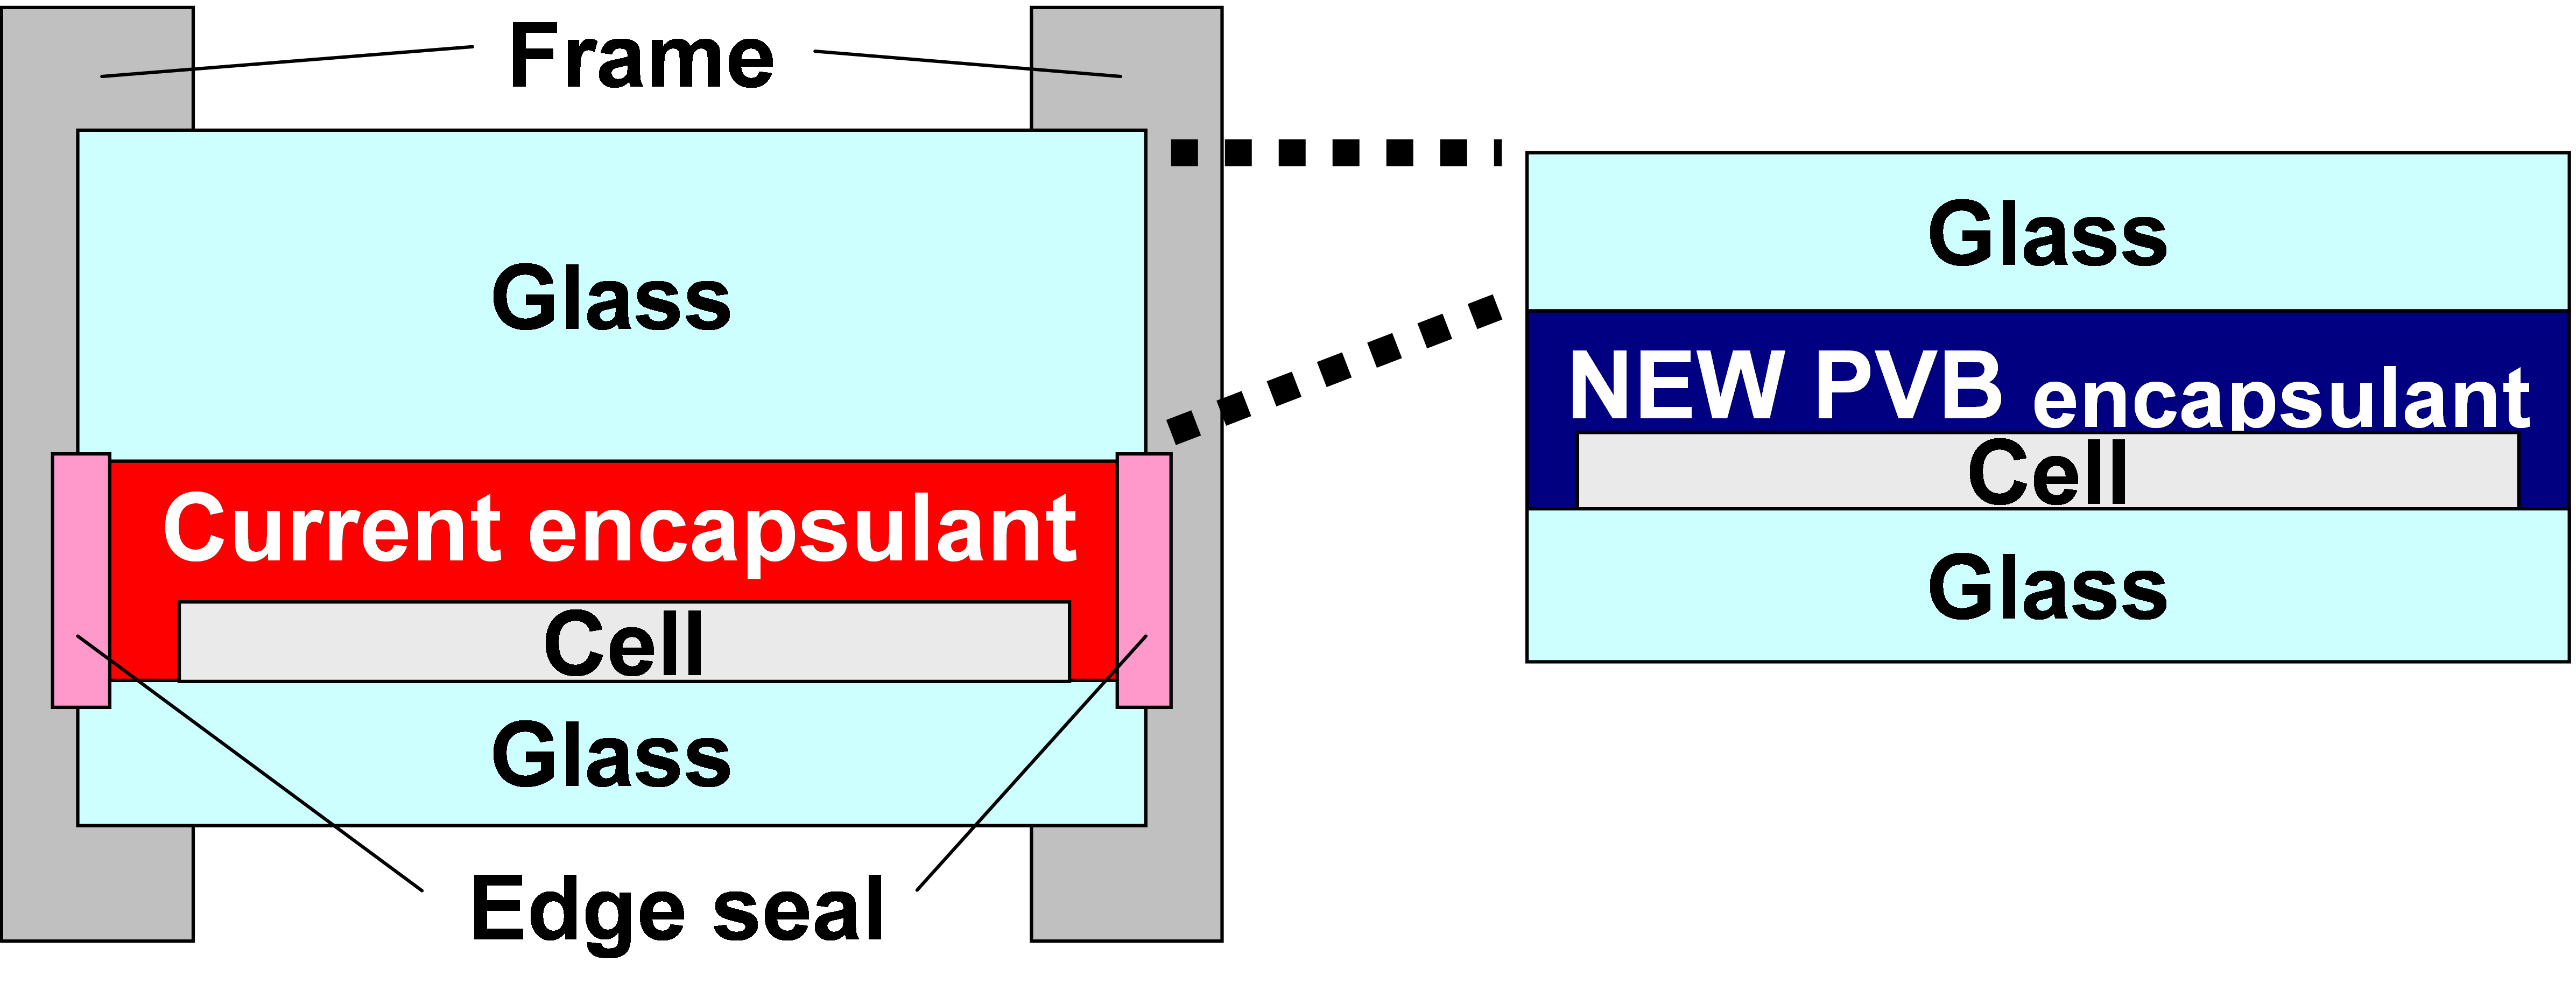 Glass Photovoltaic Wiring - Auto Electrical Wiring Diagram •